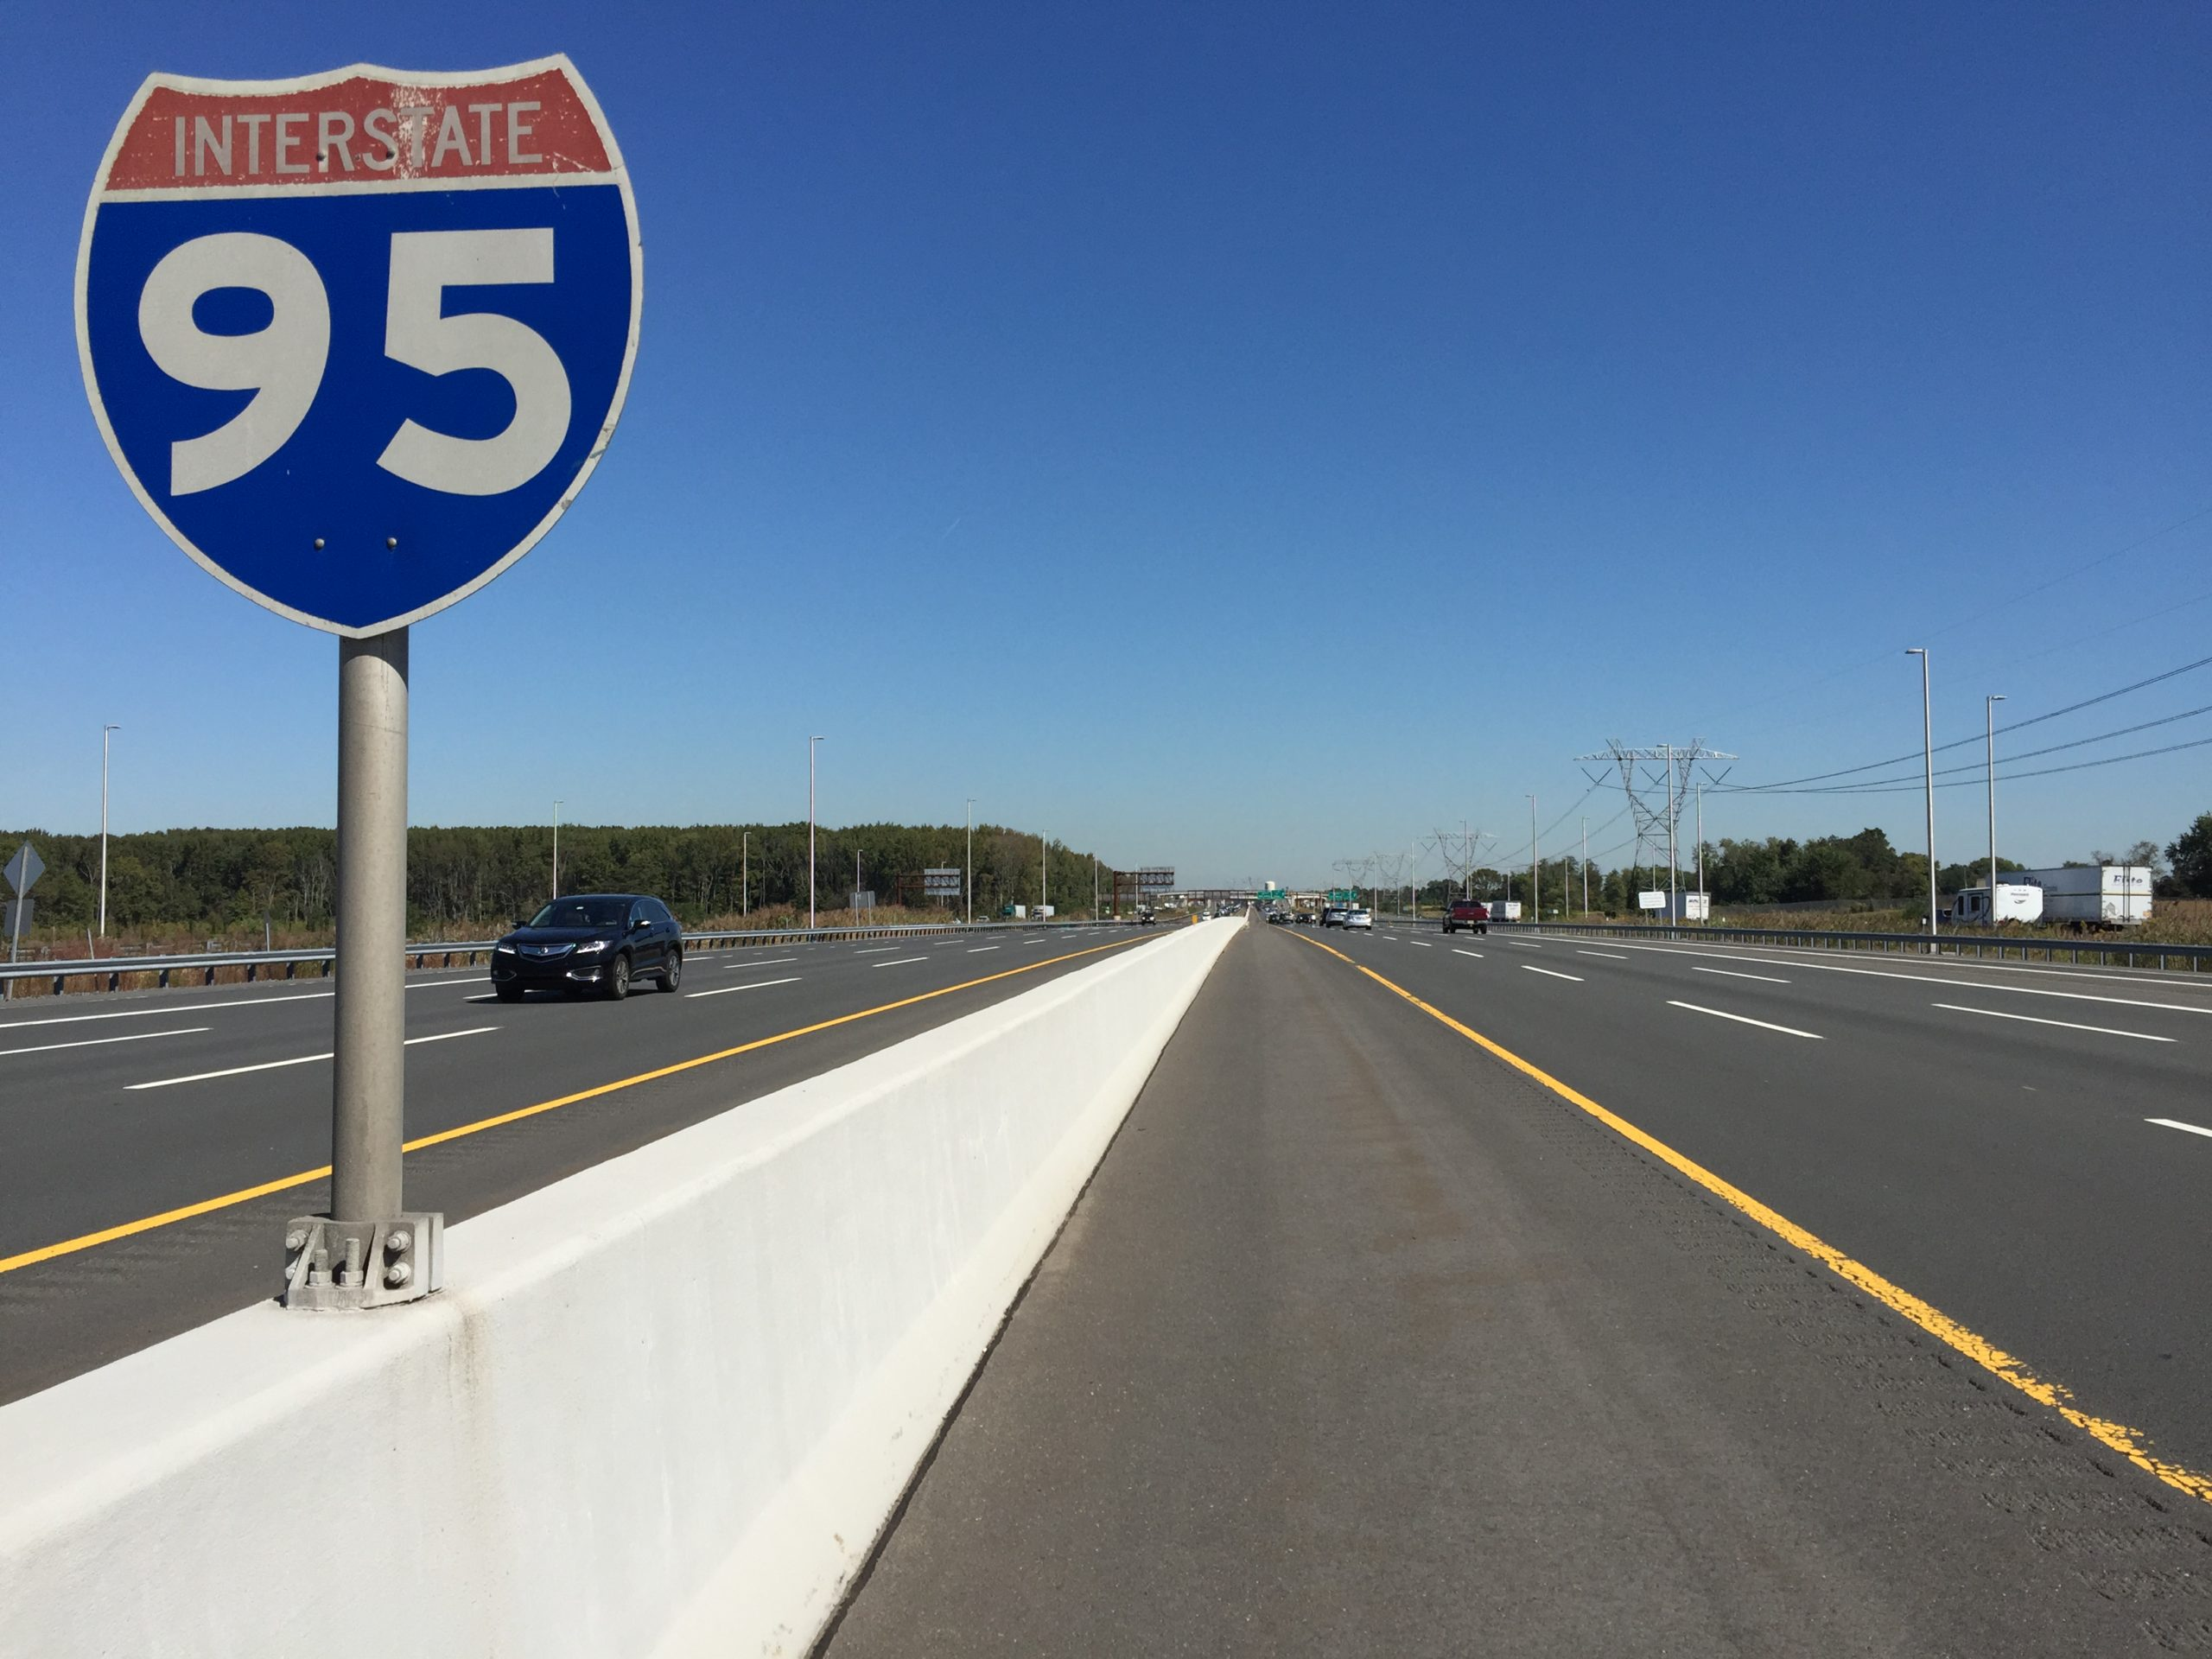 Following the favorable appeals court decision this week, the American Trucking Association will resume its fight against truck only tolls in RI